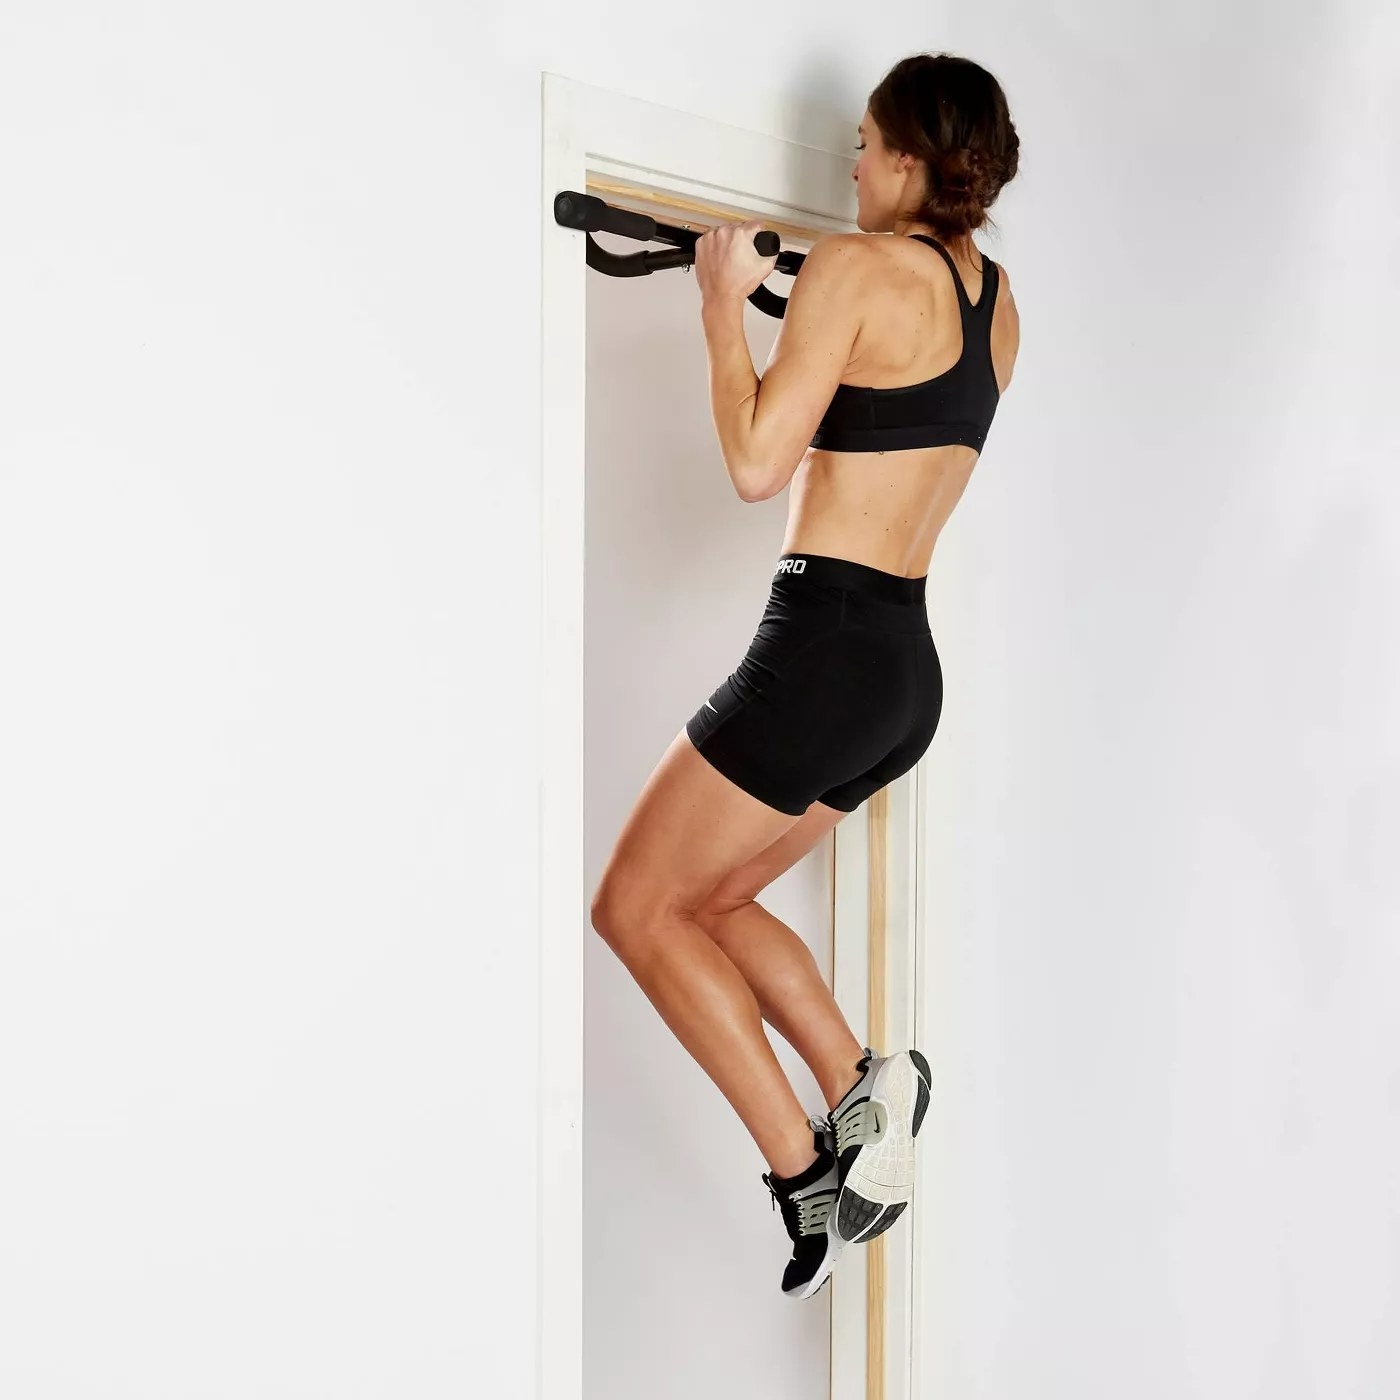 A model using the pull-up bar